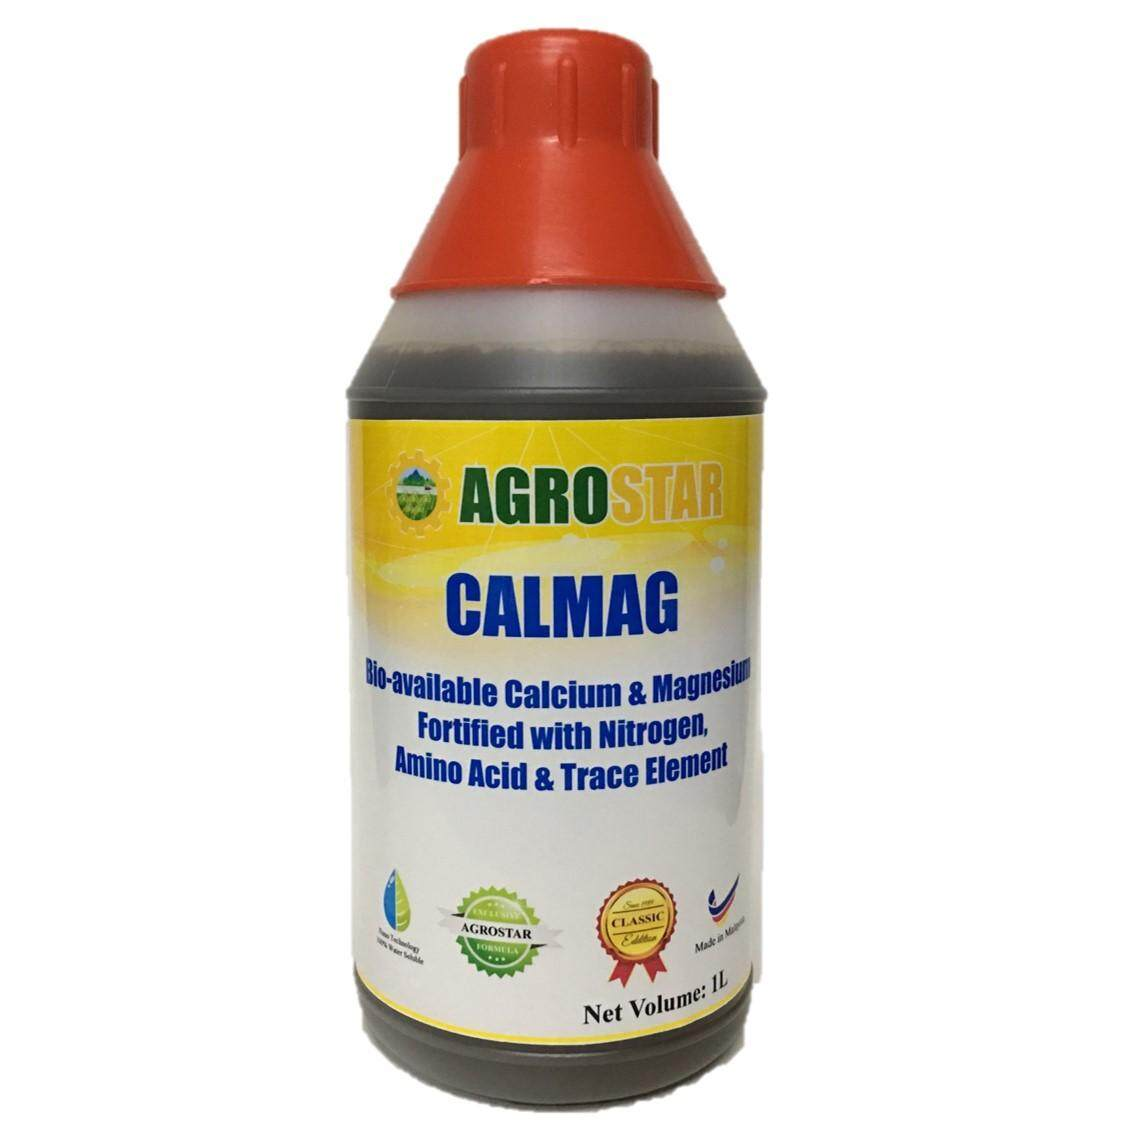 CALMAG - Bio-available Calcium and Magnesium Fortified with Nitrogen, Amino acid and trace element Liquid Fertilizer (Agrostar Brand) for Vegetables, Durian, Fruits & All ornamentals 1L (Black)